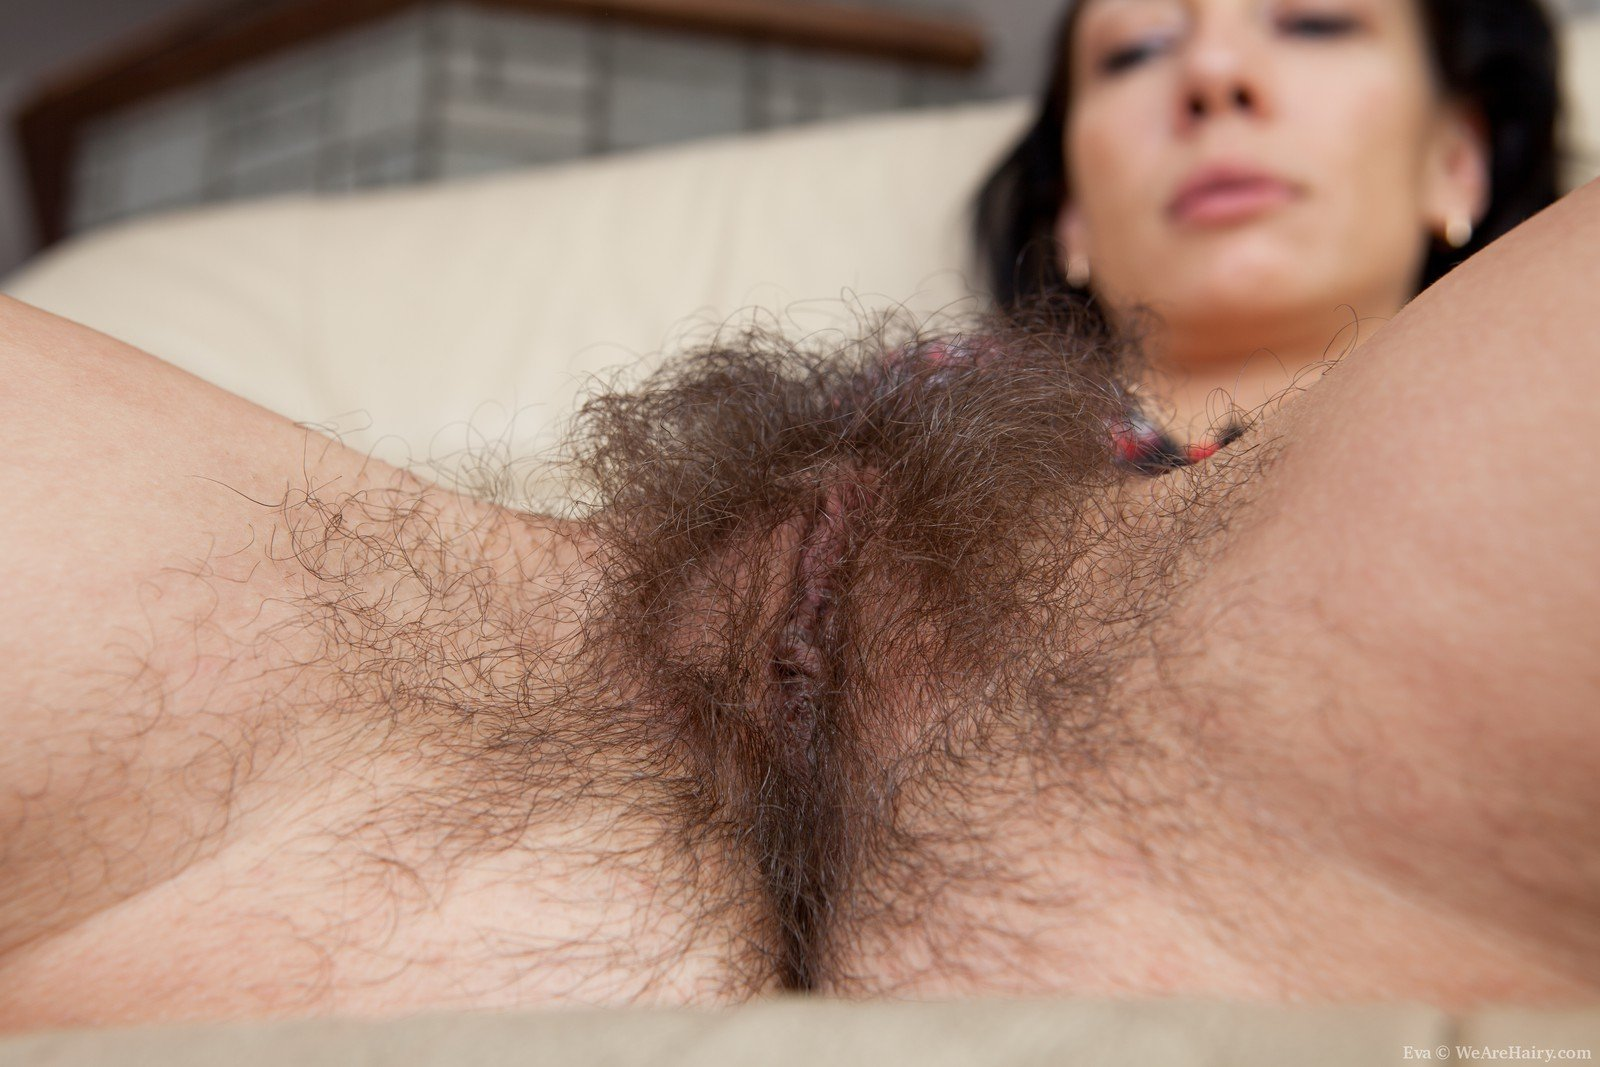 the nicest hairy pussy ever gallery 2/2